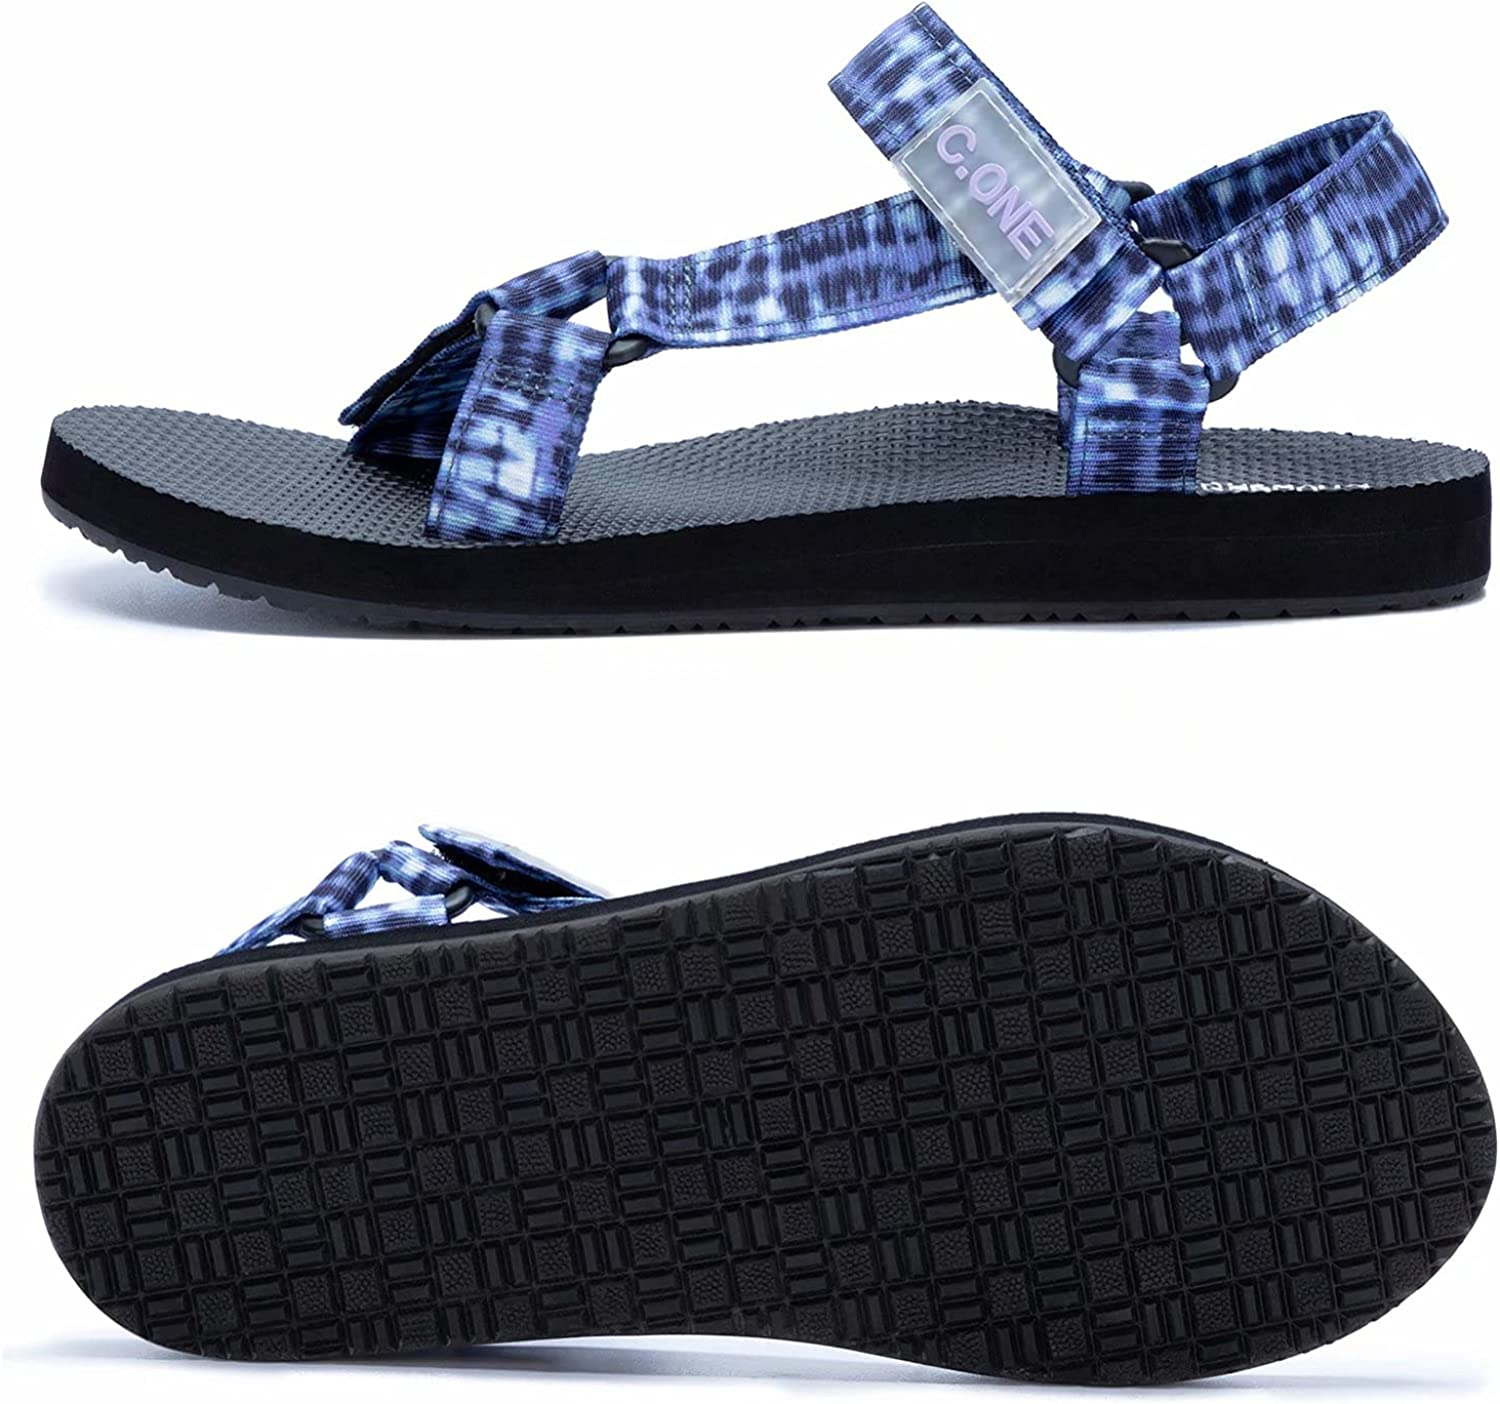 Women's Strap Sport Sandals Arch Support Outdoor Wading Beach Water Shoes